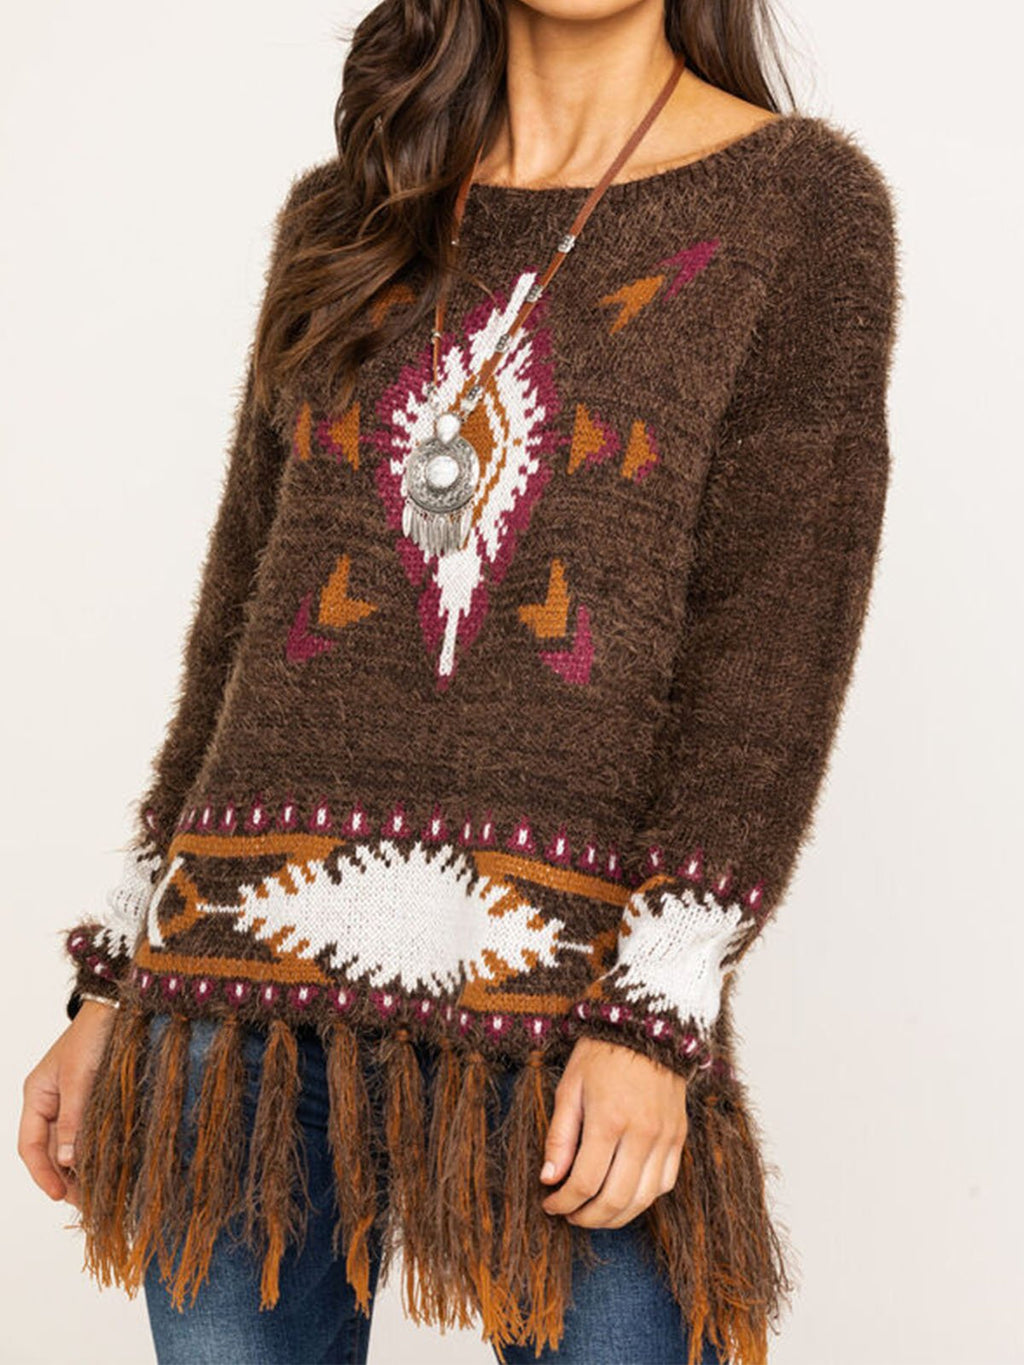 Brown Long Sleeve Geometric Sweater